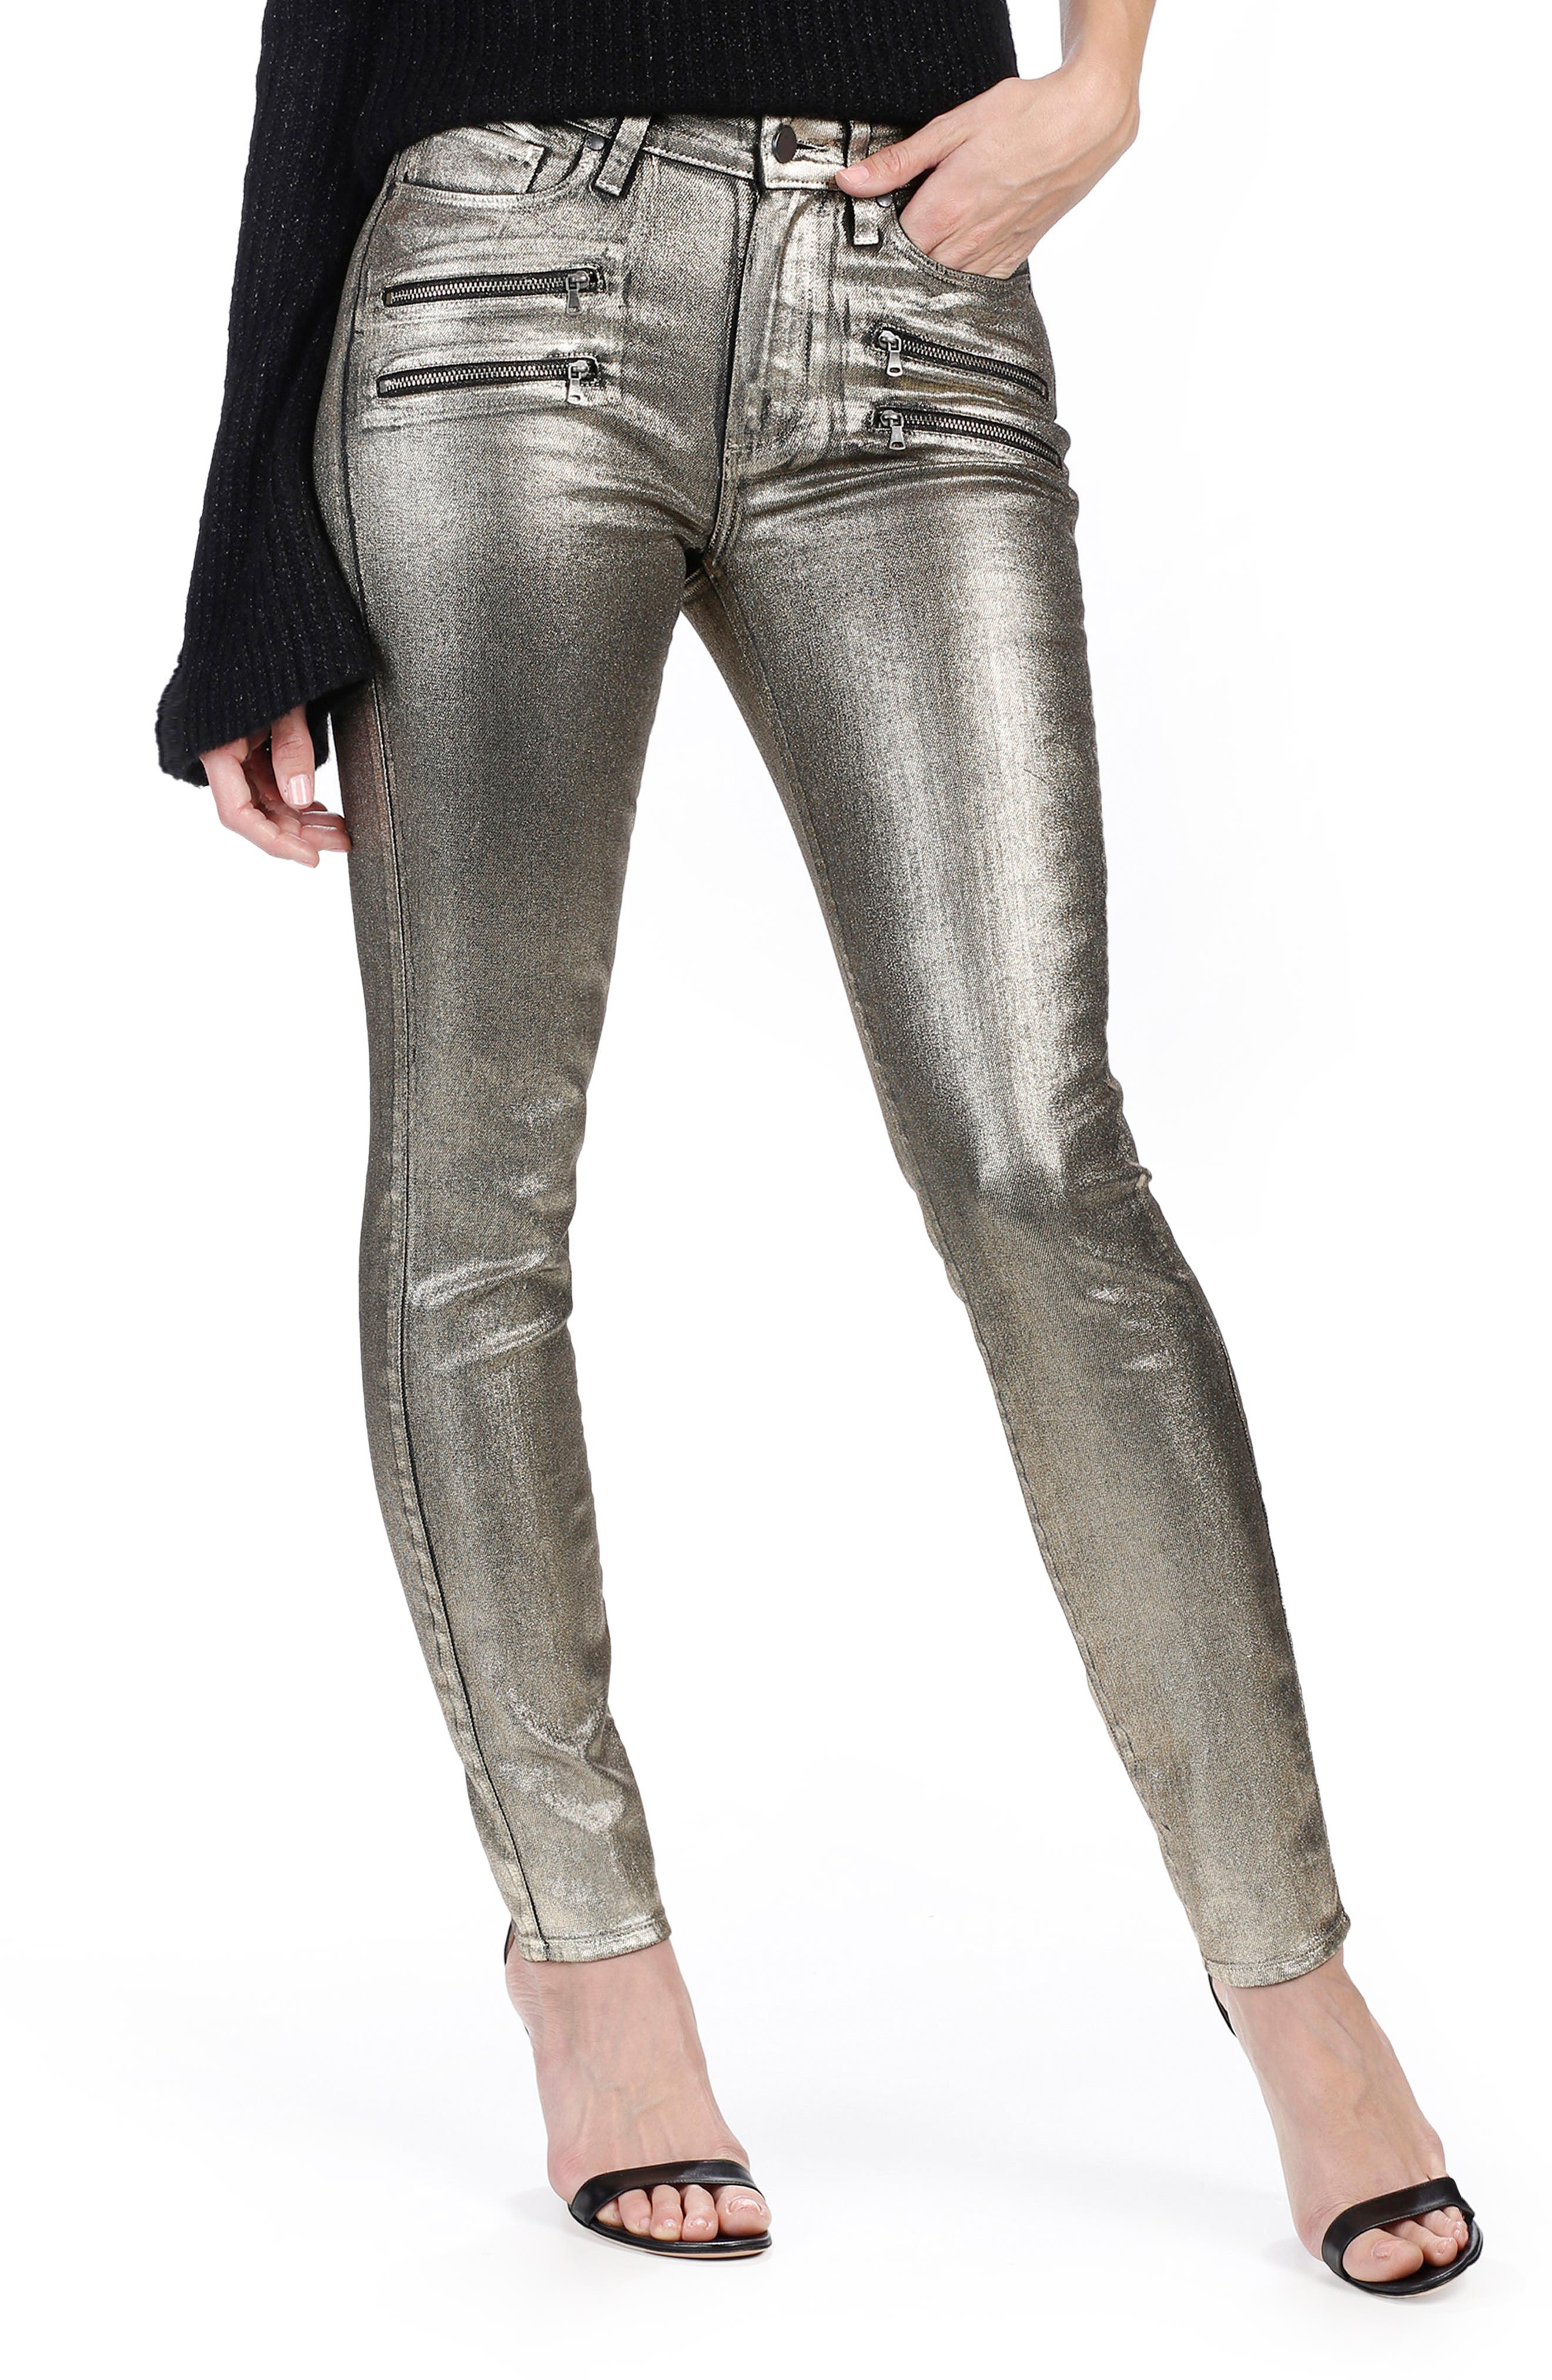 Main Image - Rosie HW x PAIGE Stevie High Waist Skinny Jeans (Gold Galaxy Coating)